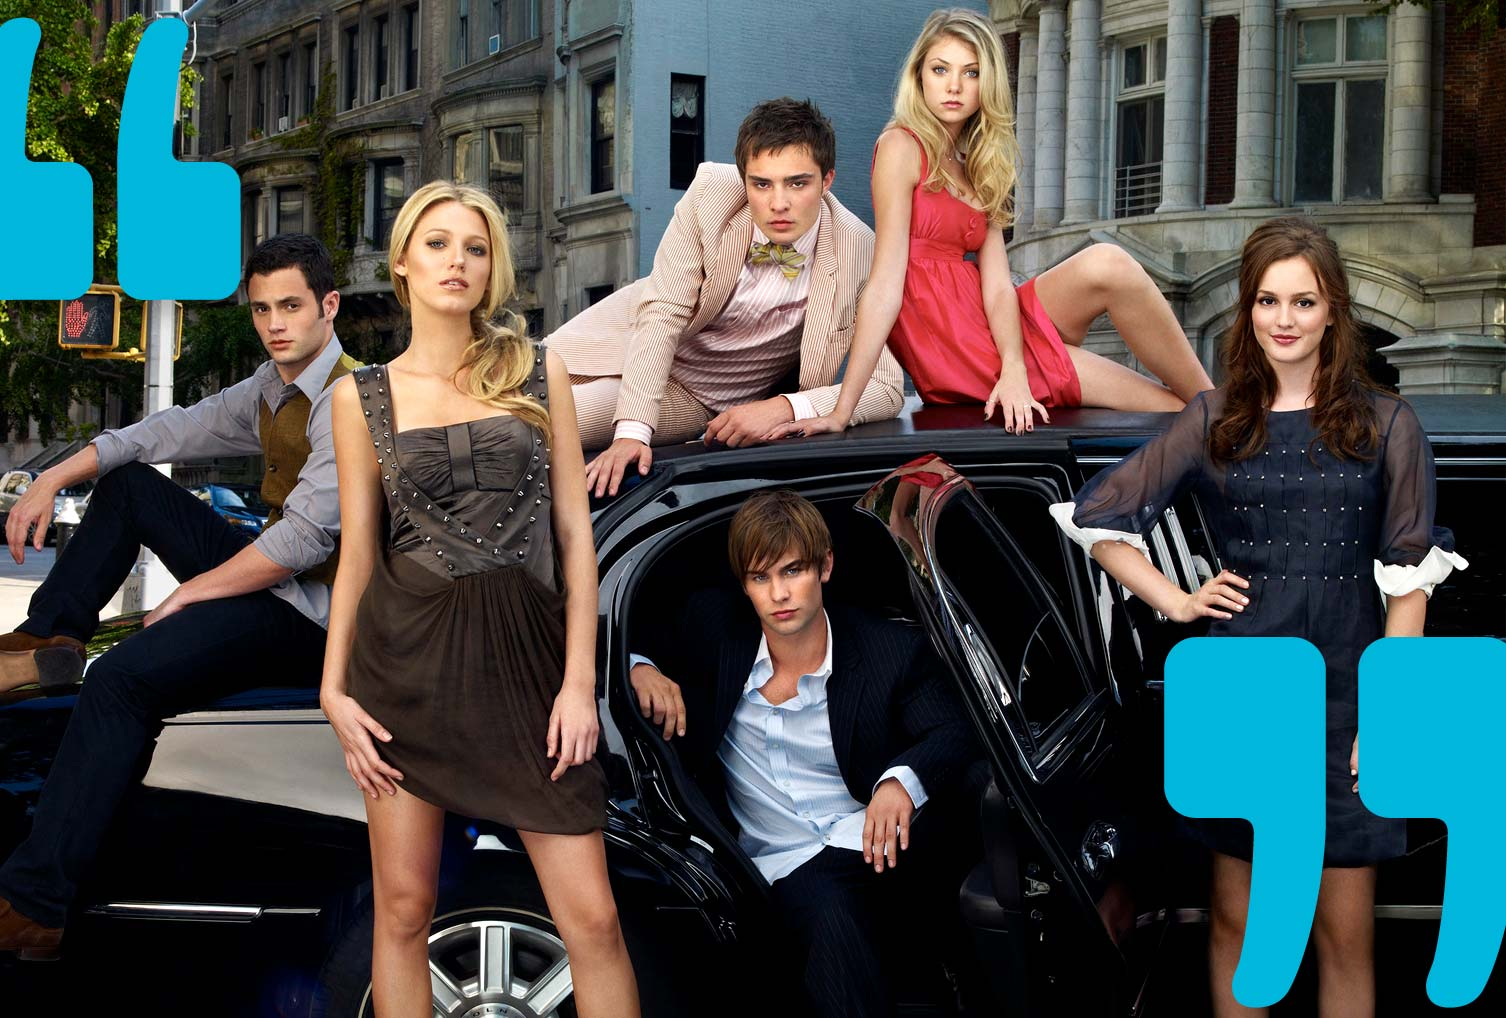 All Gossip Girl Trivia Quizzes and Games - Sporcle